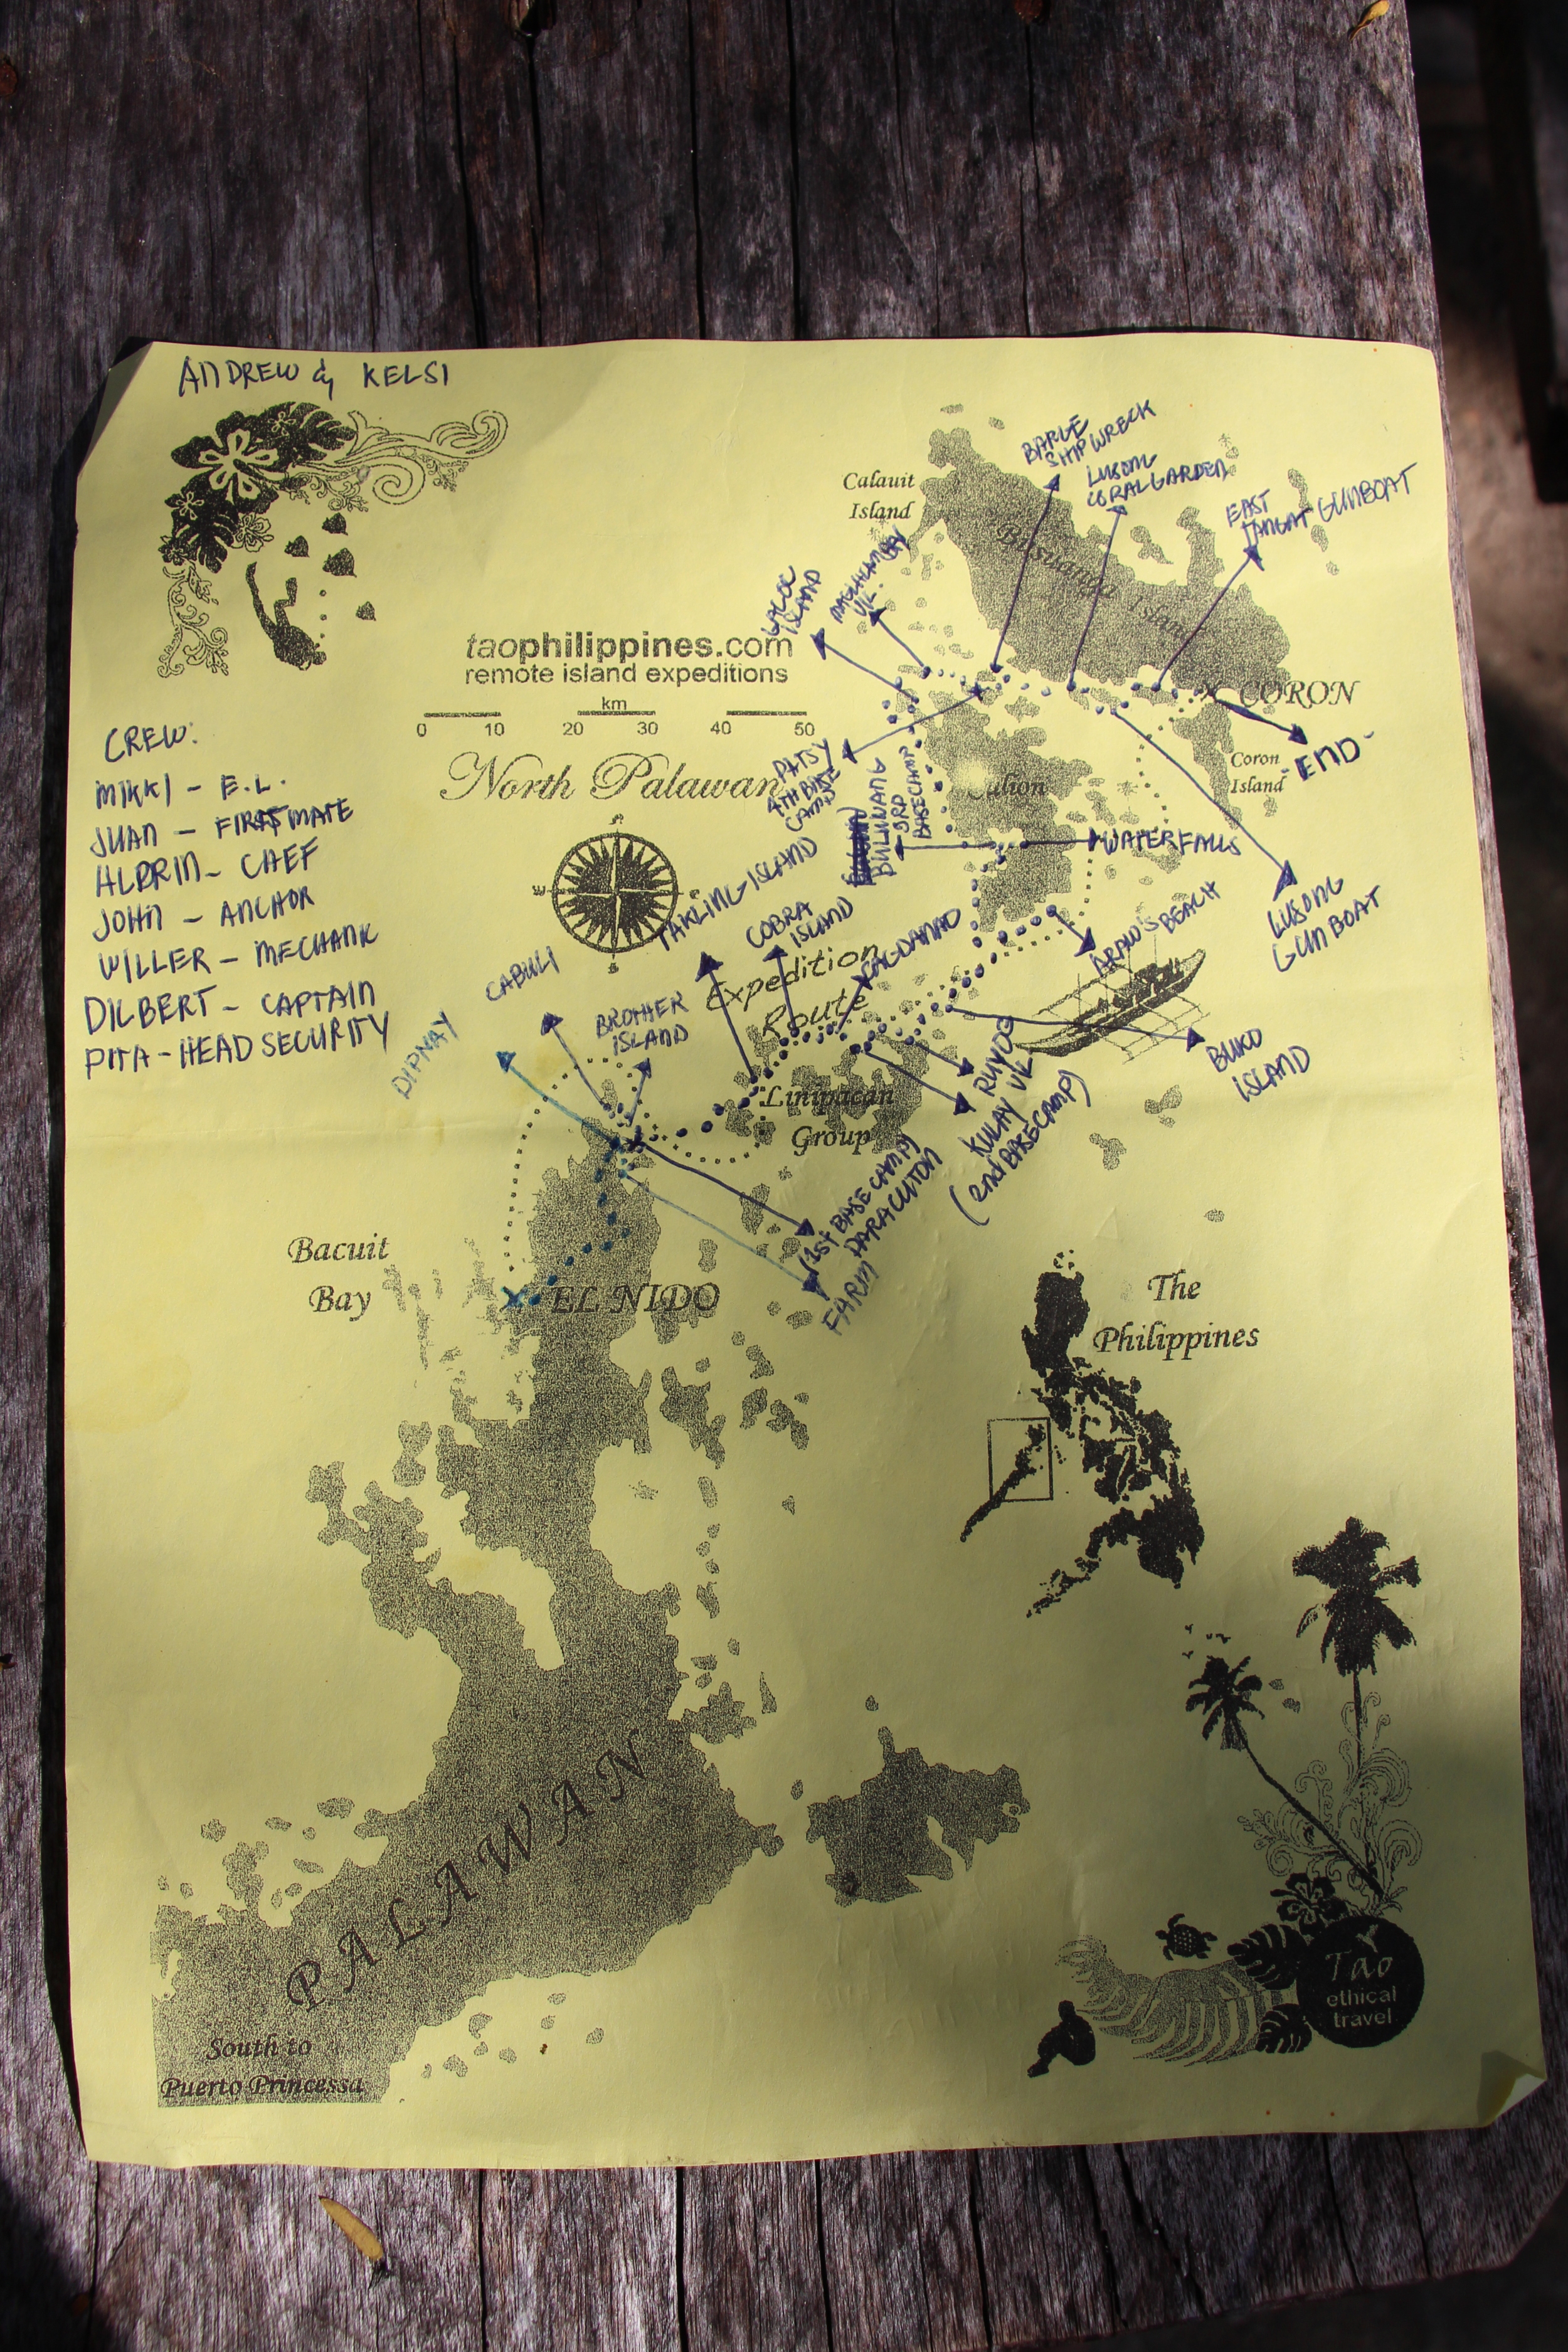 At end of our trip, our Expedition Leader Miki made us a map of the islands we visited (Click to enlarge)